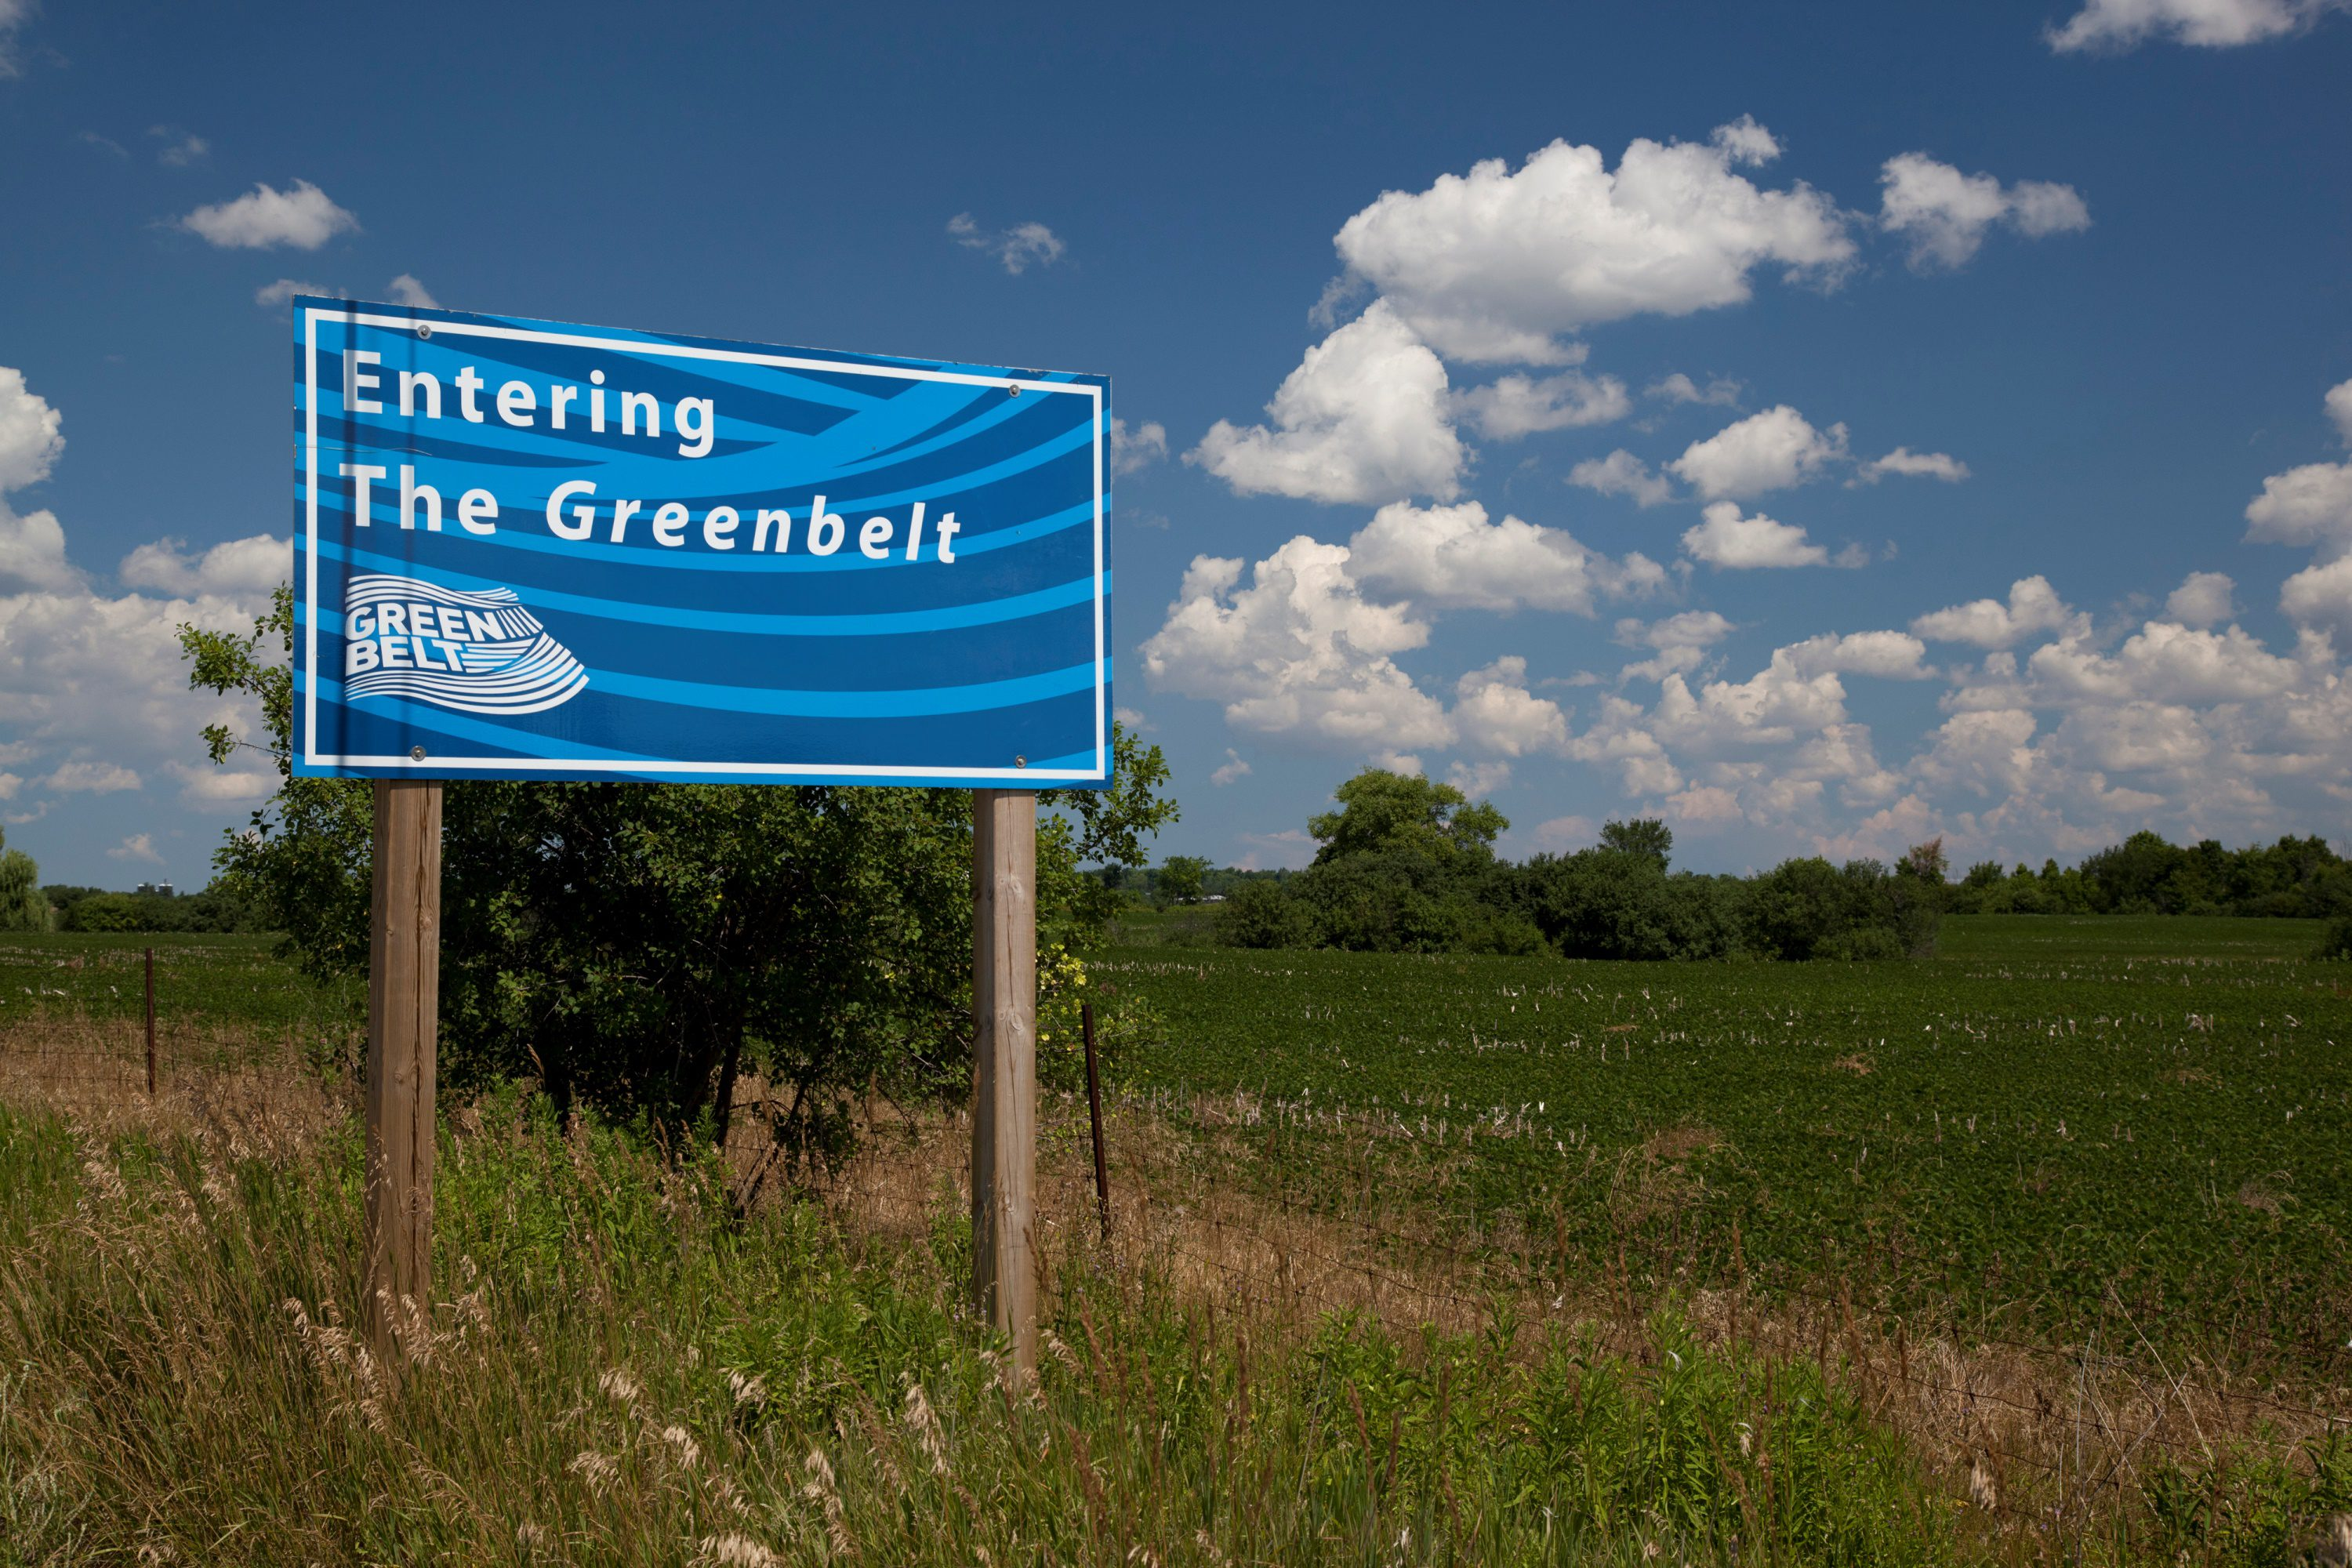 Highway 413 would pave over part of the Greenbelt